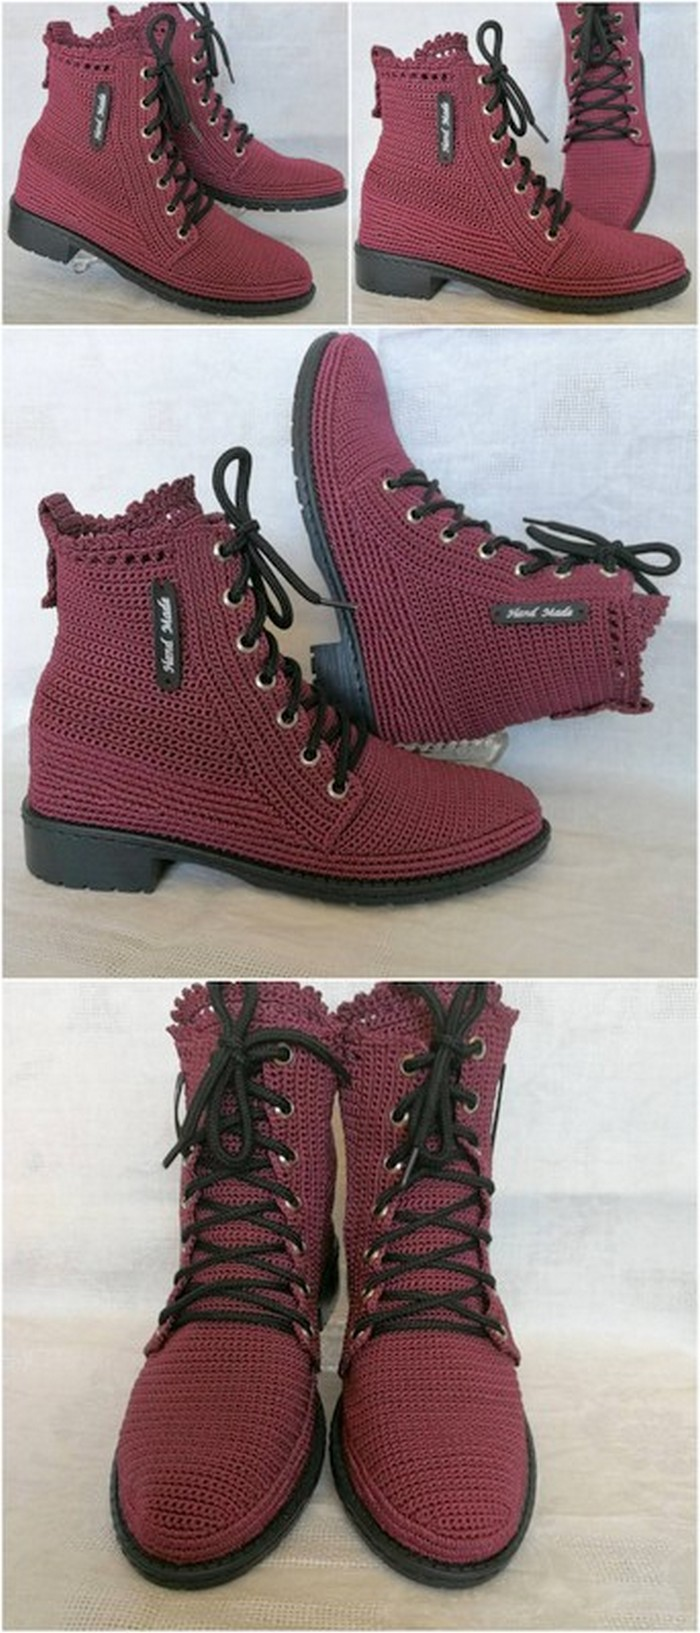 graceful crochet shoes project